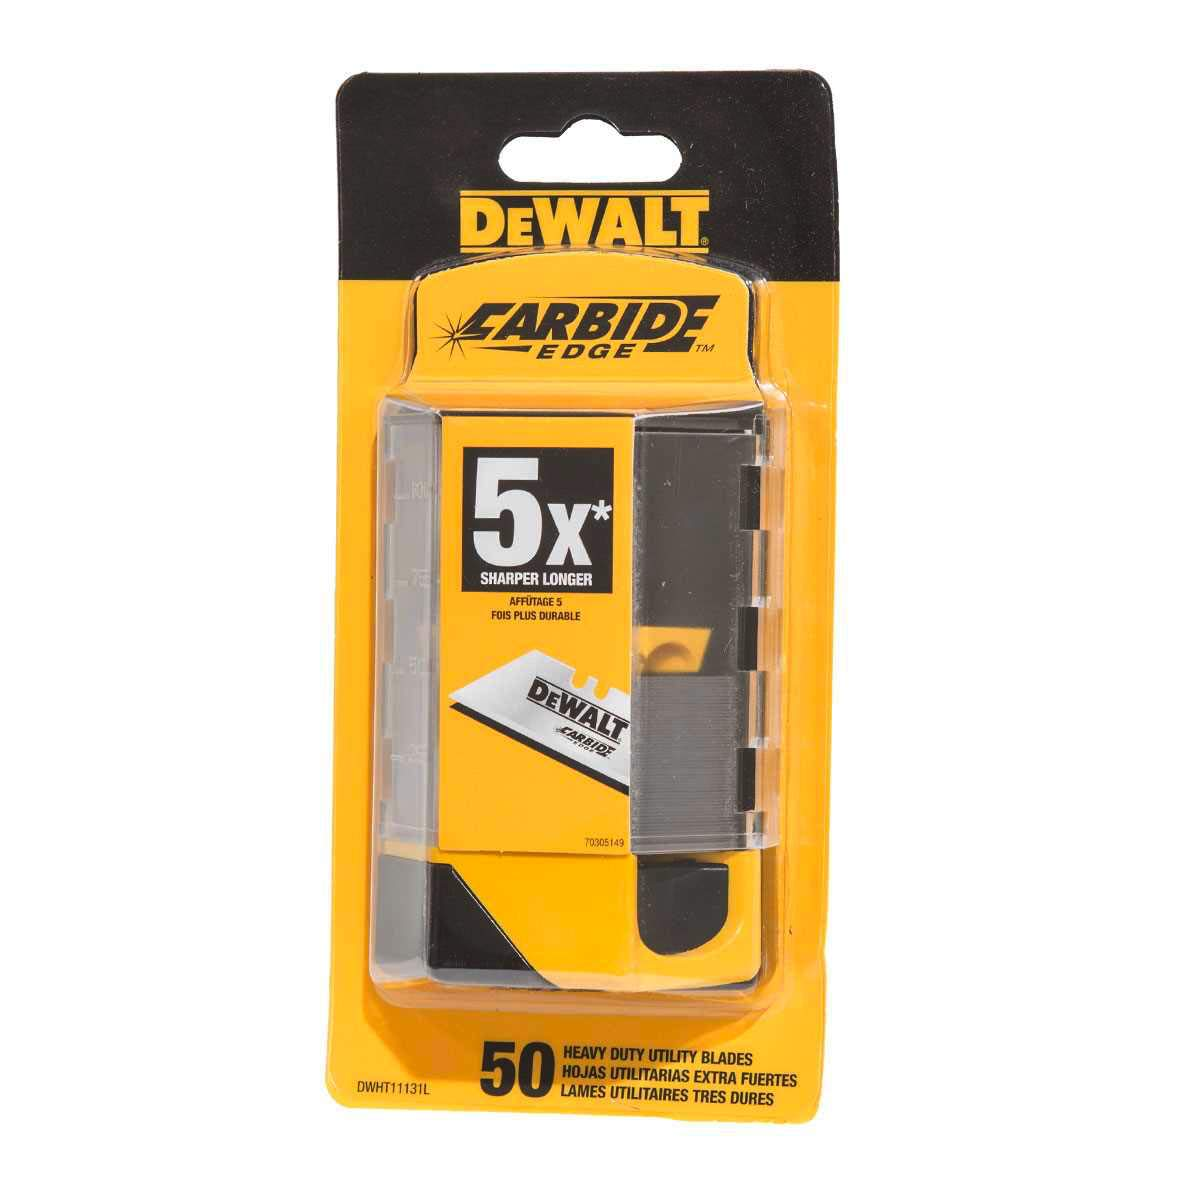 DeWalt Carbide Edge Utility Knife Blades - Last 10x Longer (50-Pack)